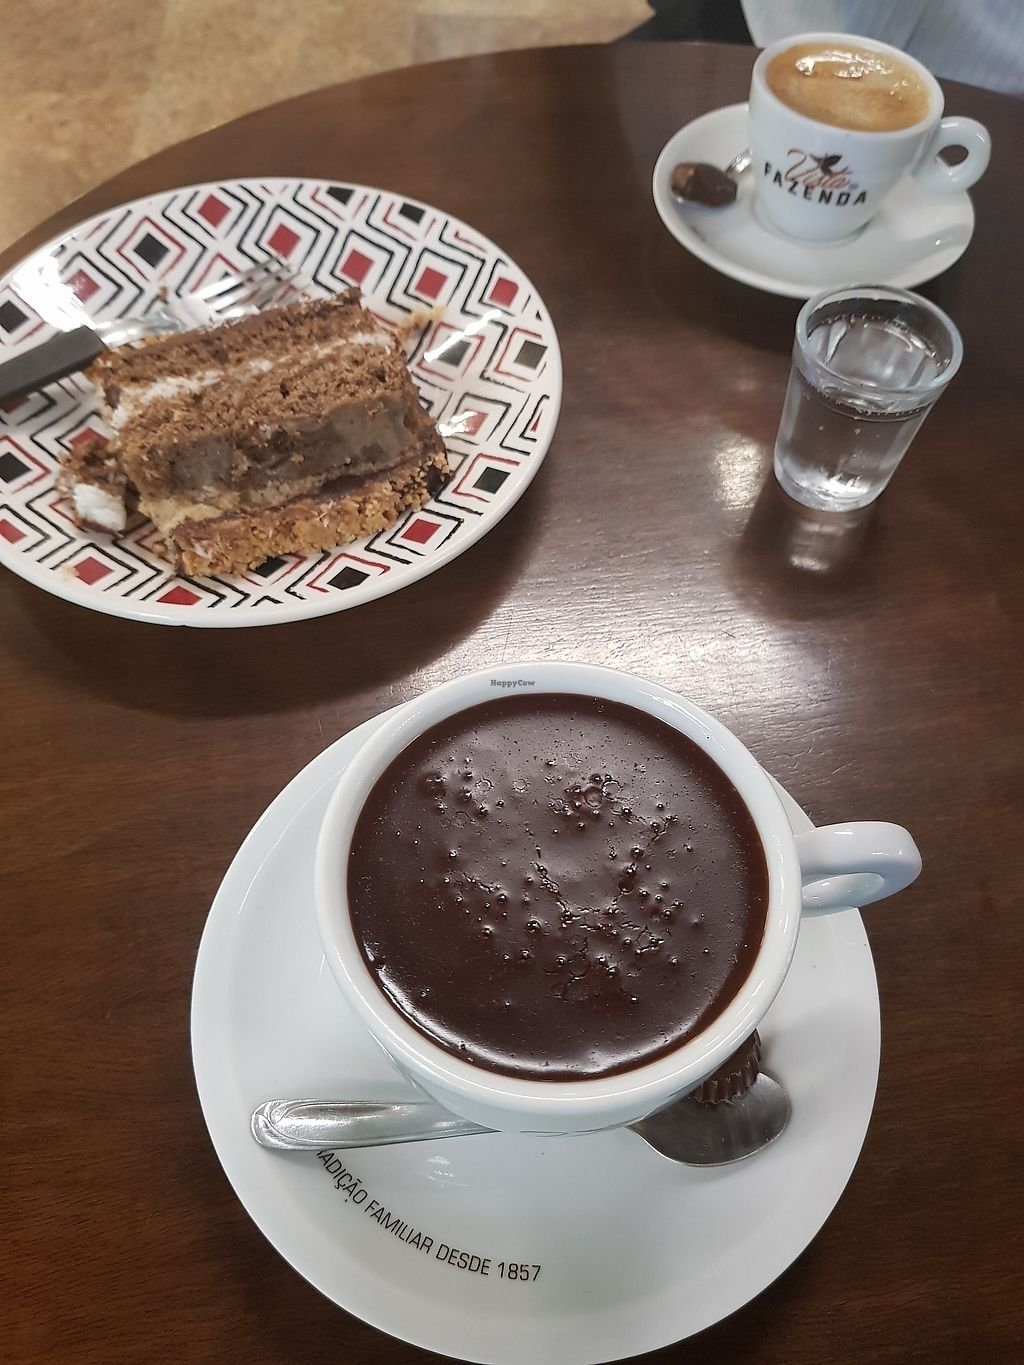 "Photo of Cantinho da Terra  by <a href=""/members/profile/TatianaSaito"">TatianaSaito</a> <br/>hot creamy chocolate and vegan cakes <br/> August 1, 2017  - <a href='/contact/abuse/image/60291/287708'>Report</a>"